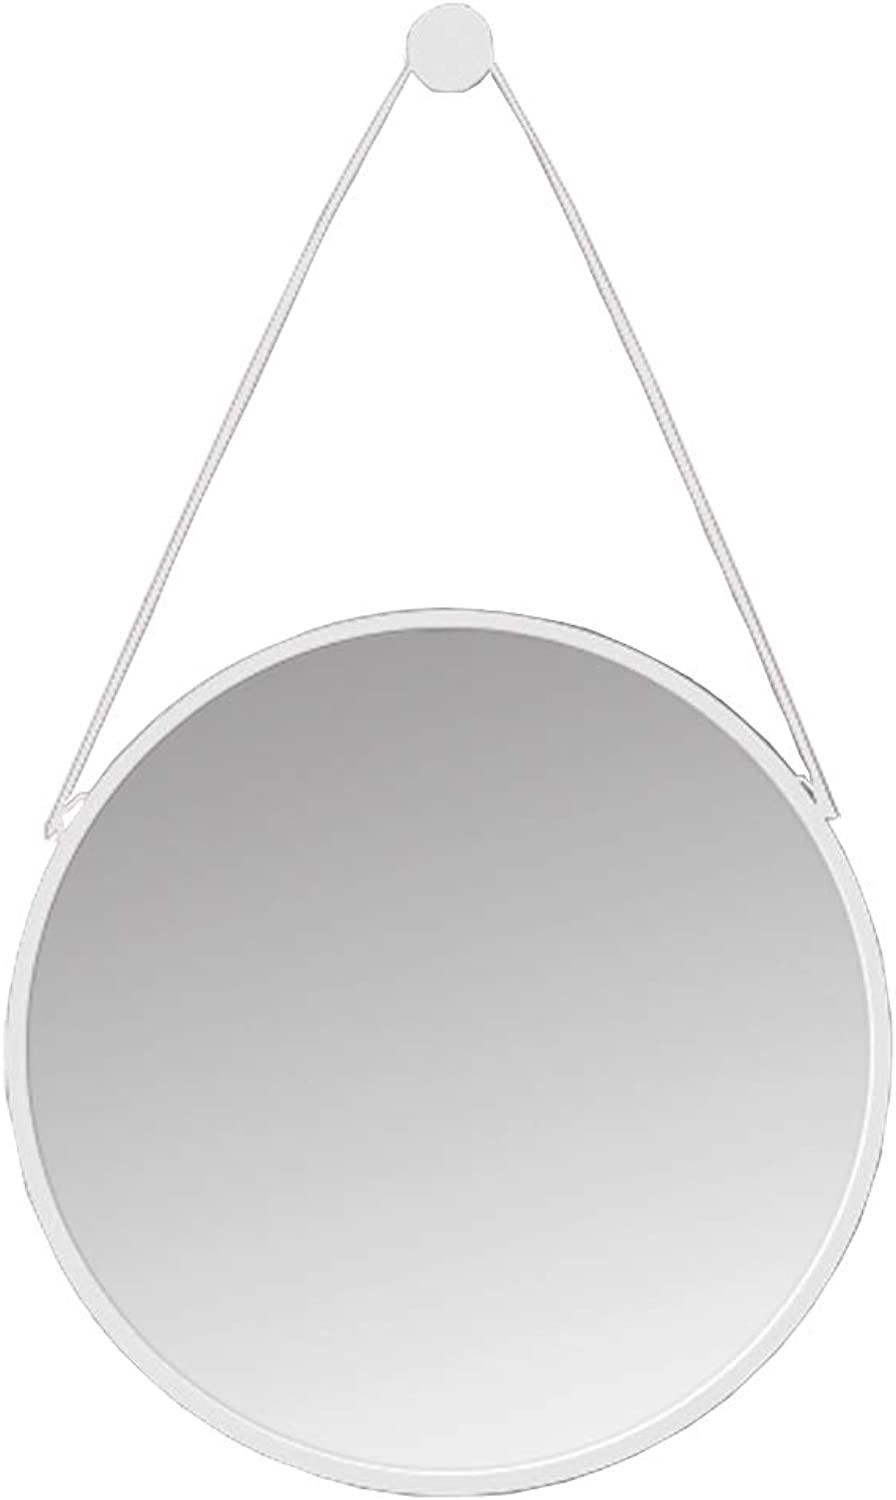 Hanging Mirror-Bathroom Makeup Mirrors Large Modern White Circle Frame Wall Mirror   Floating Round Glass Panel   Vanity Mirror for Bedroom or Living Room(16Inch-32Inch)